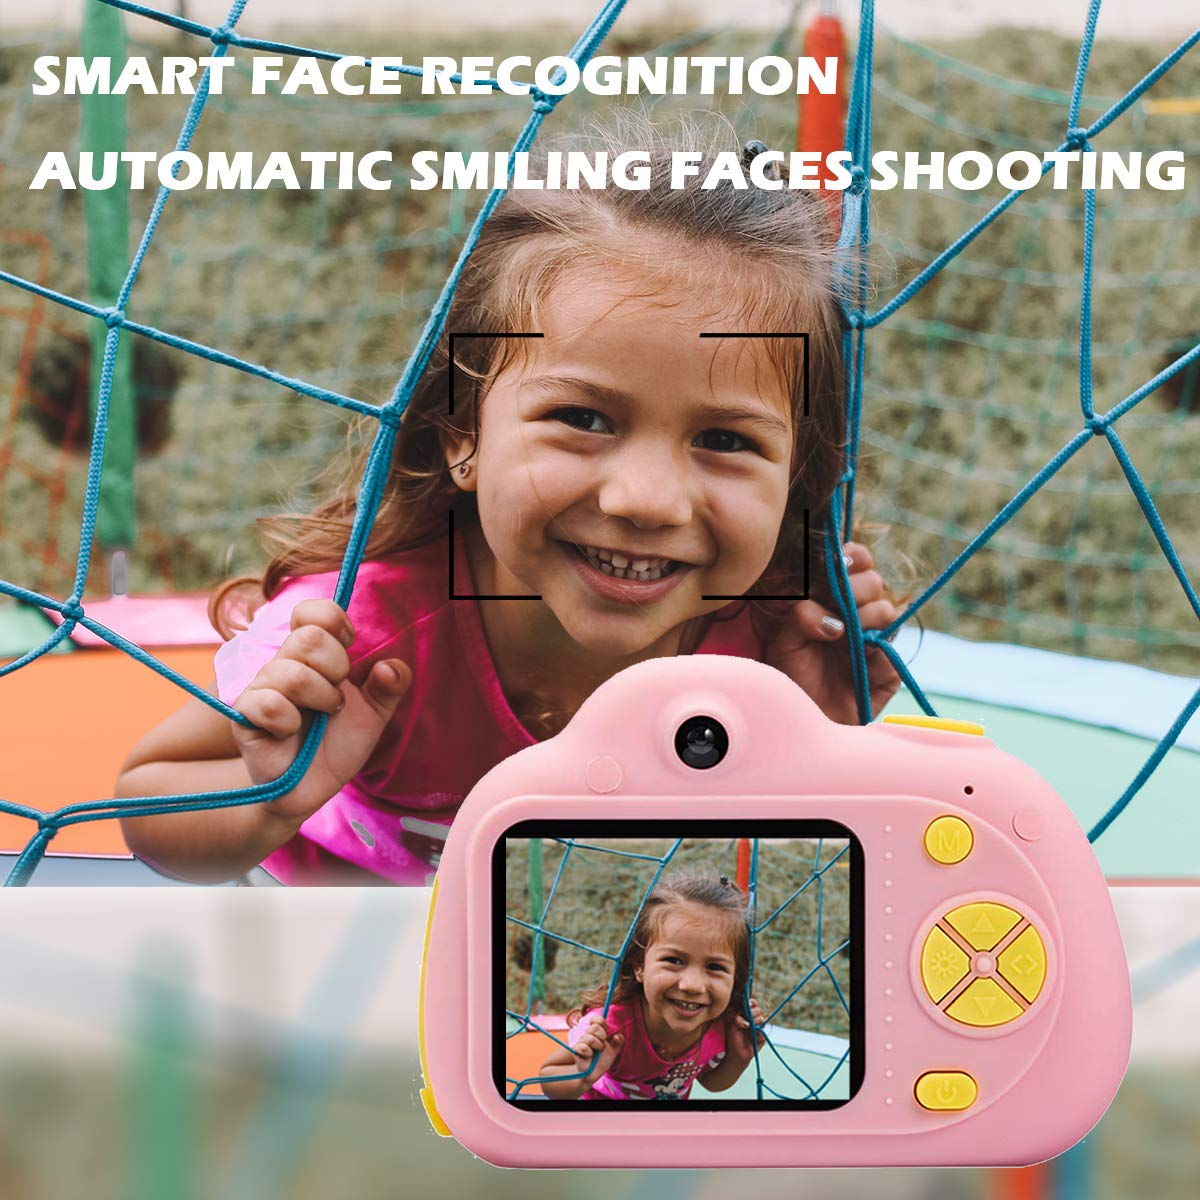 KIDOVE Kids Toys Fun Camera, Waterproof & Shockproof Child Selfie digital game Camcorder, 8MP 1080P dual camera Video Recorder, Creative Birthday Gifts for girls and boys, 16GB TF Card Included (Pink) by KIDOVE (Image #4)